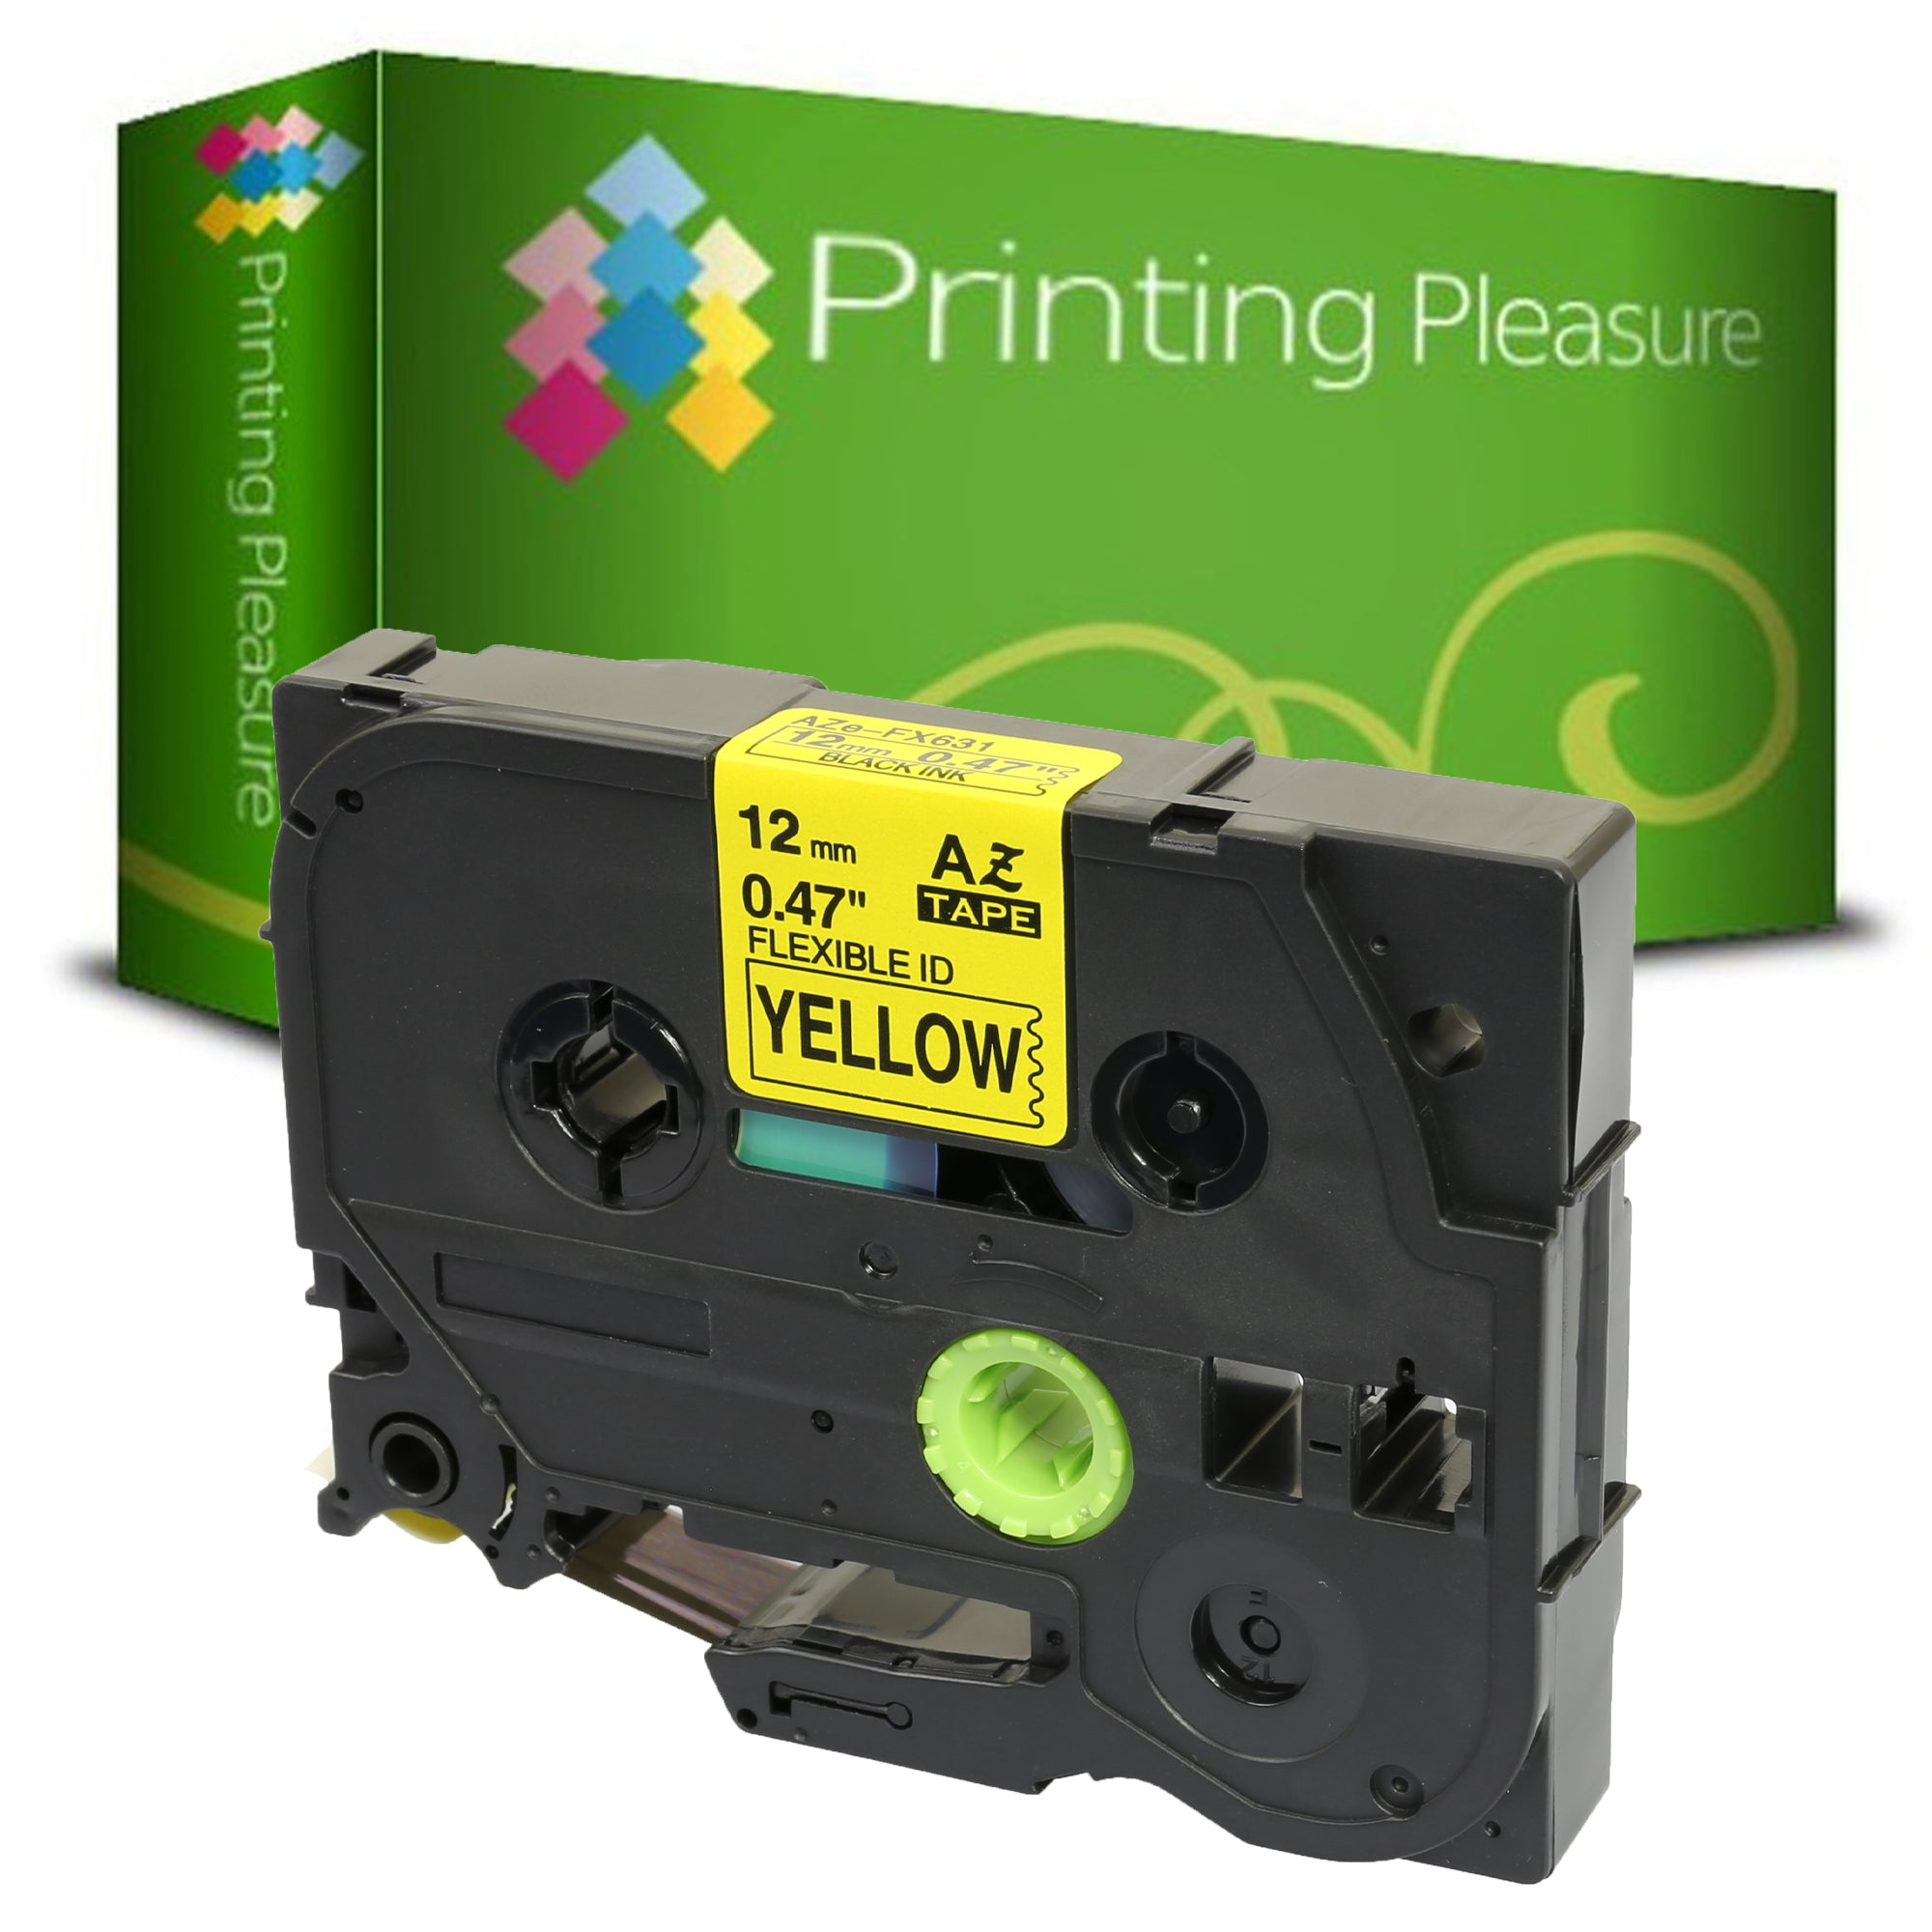 TZeFX631 Black on Yellow (12mm x 8m) Flexible Tape compatible with Brother P-Touch - Printing Pleasure